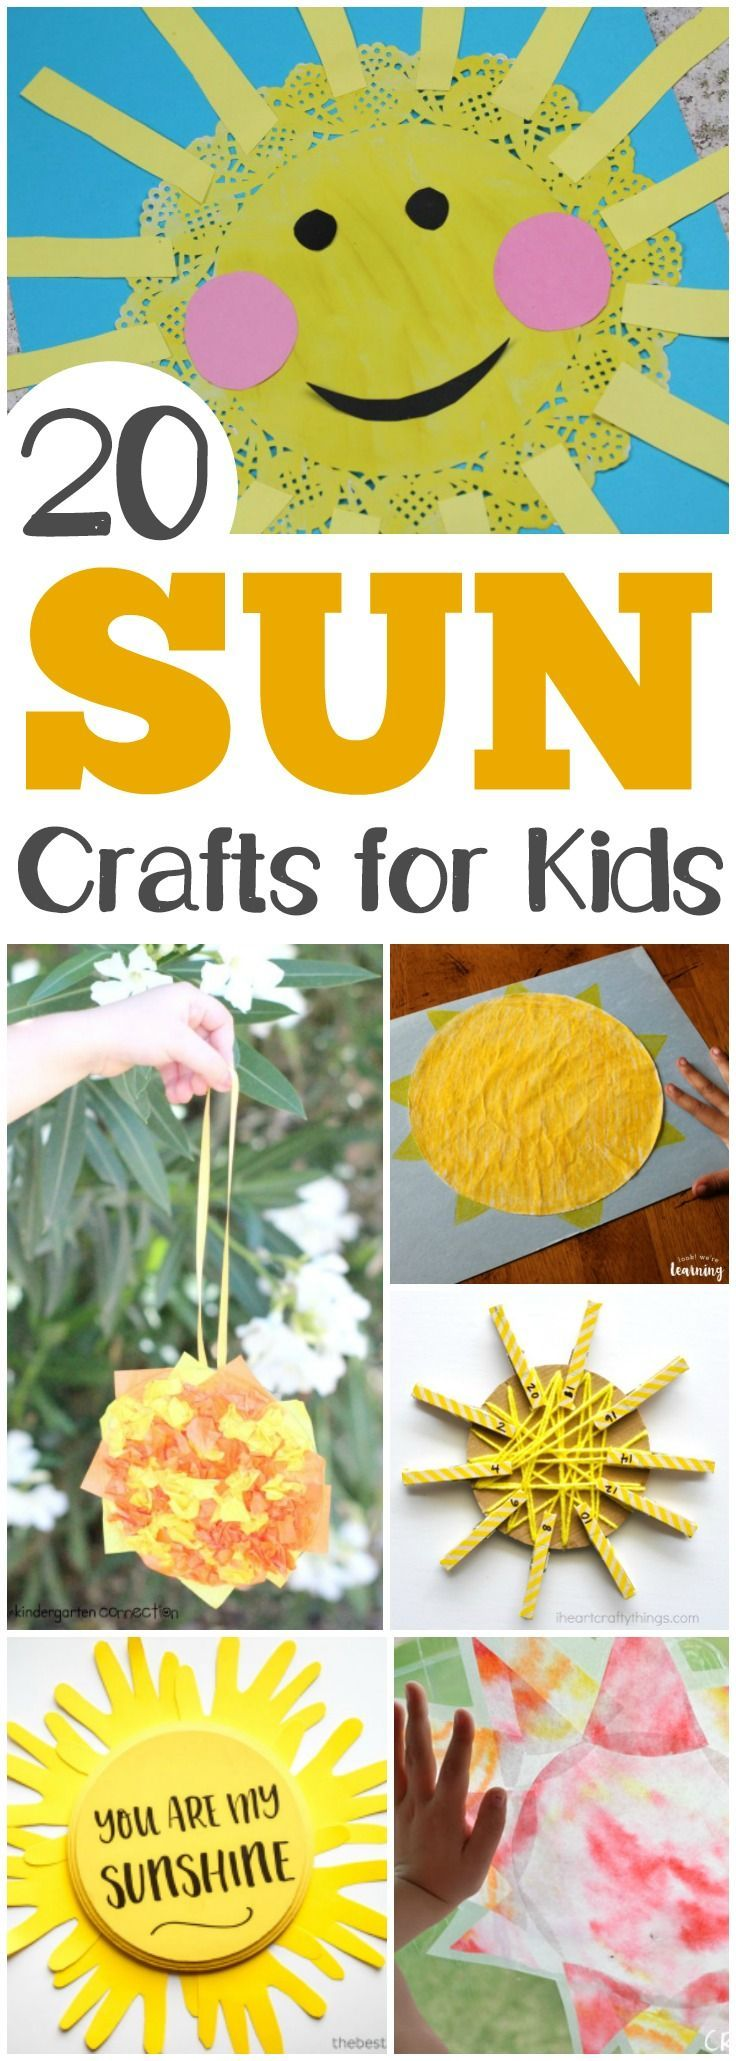 20 Fun And Easy Sun Crafts For Kids Crafts For Kids Pinterest